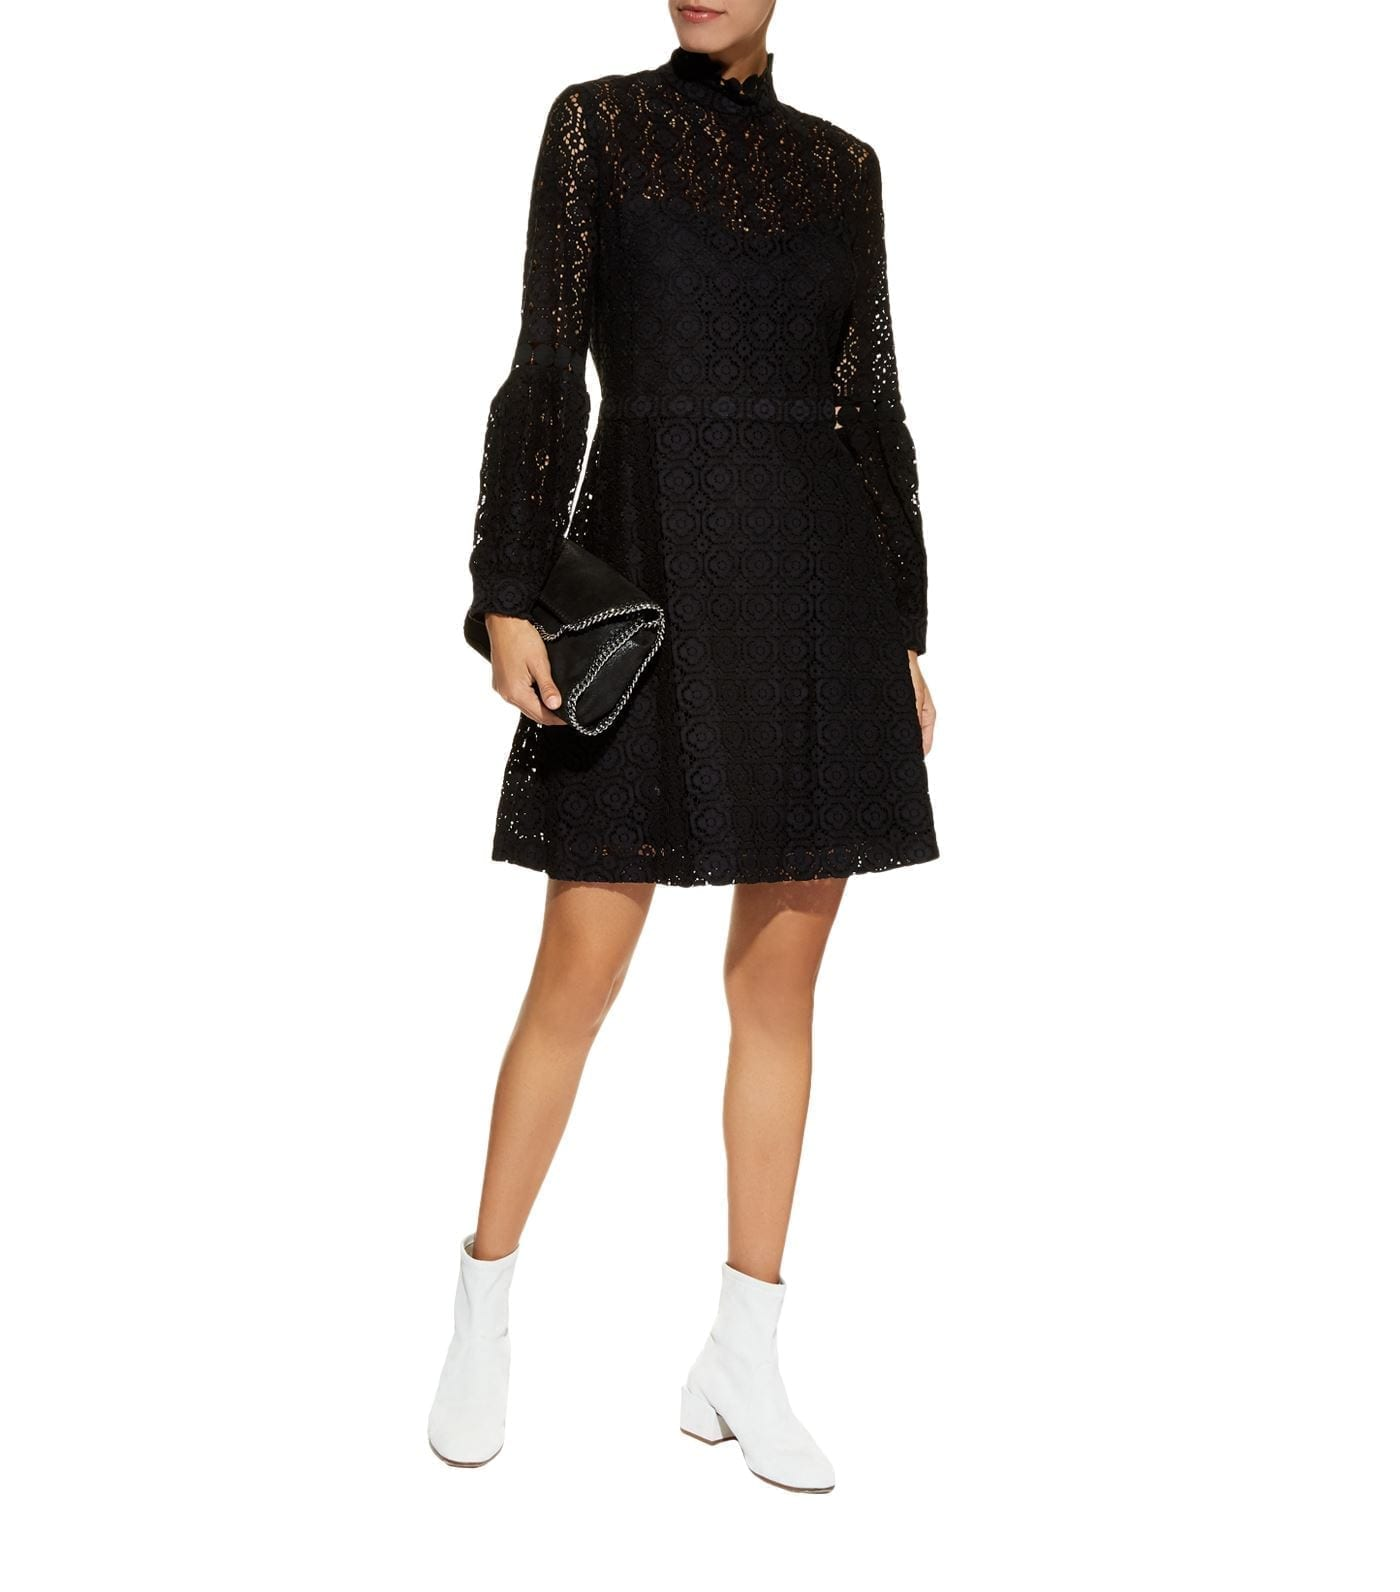 CLAUDIE PIERLOT Lace Black Dress